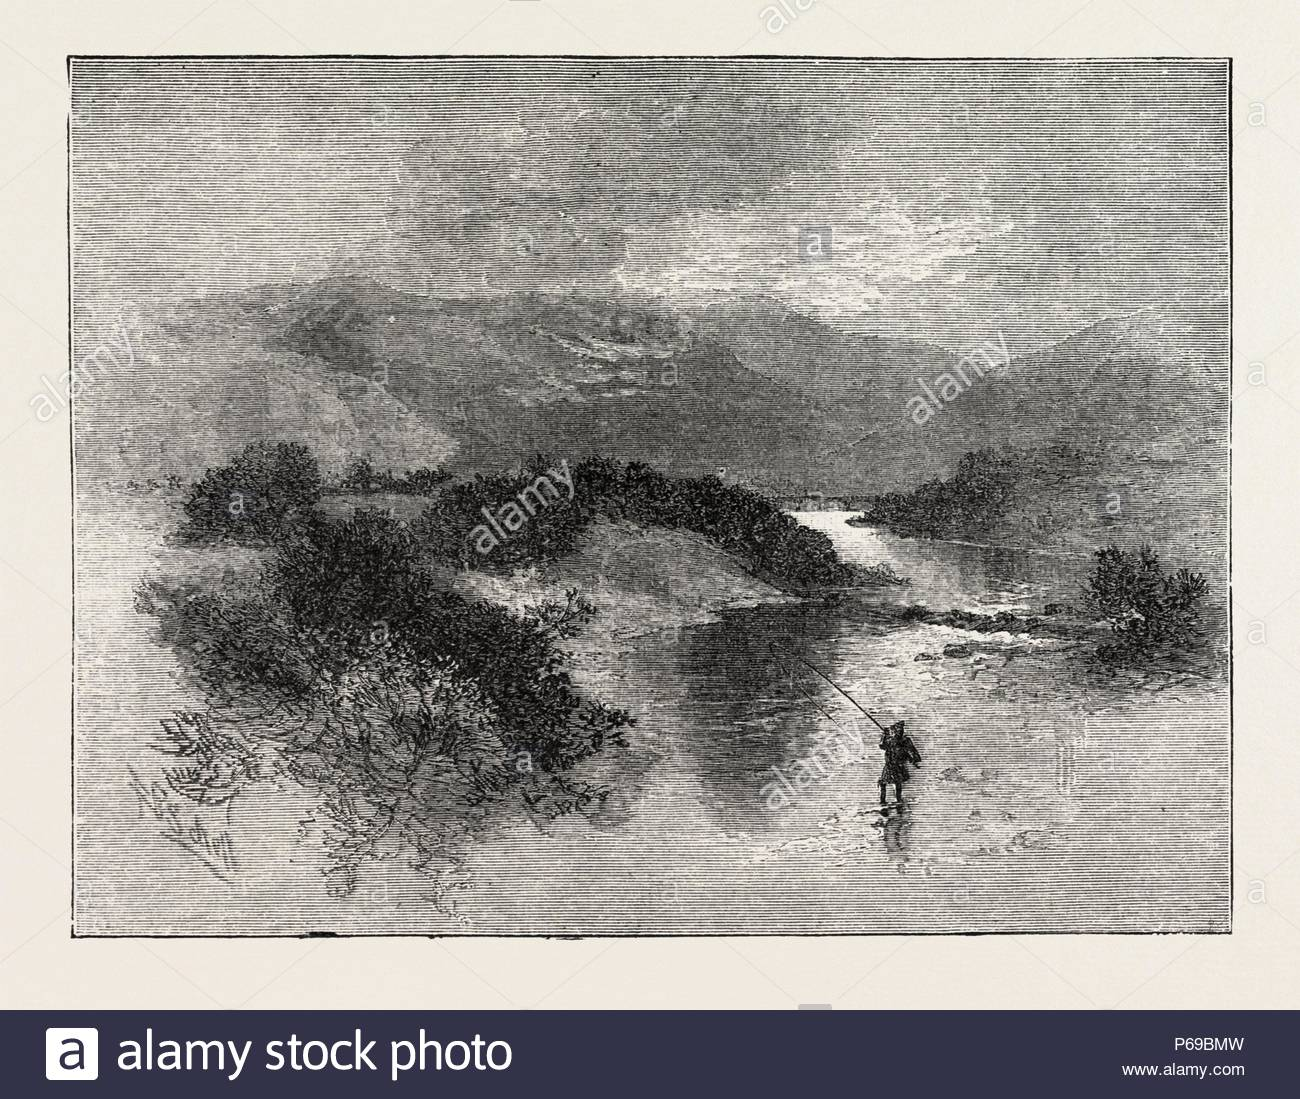 SIR WALER SCOTT, MARMION, An angry brook, it sweeps the glade, Brawls over rock and wild cascade, And, foaming brown with doubled speed, Hurries its waters to the Tweed., engraving 1884, UK, britain, british, europe, united kingdom, great britain, european. - Stock Image